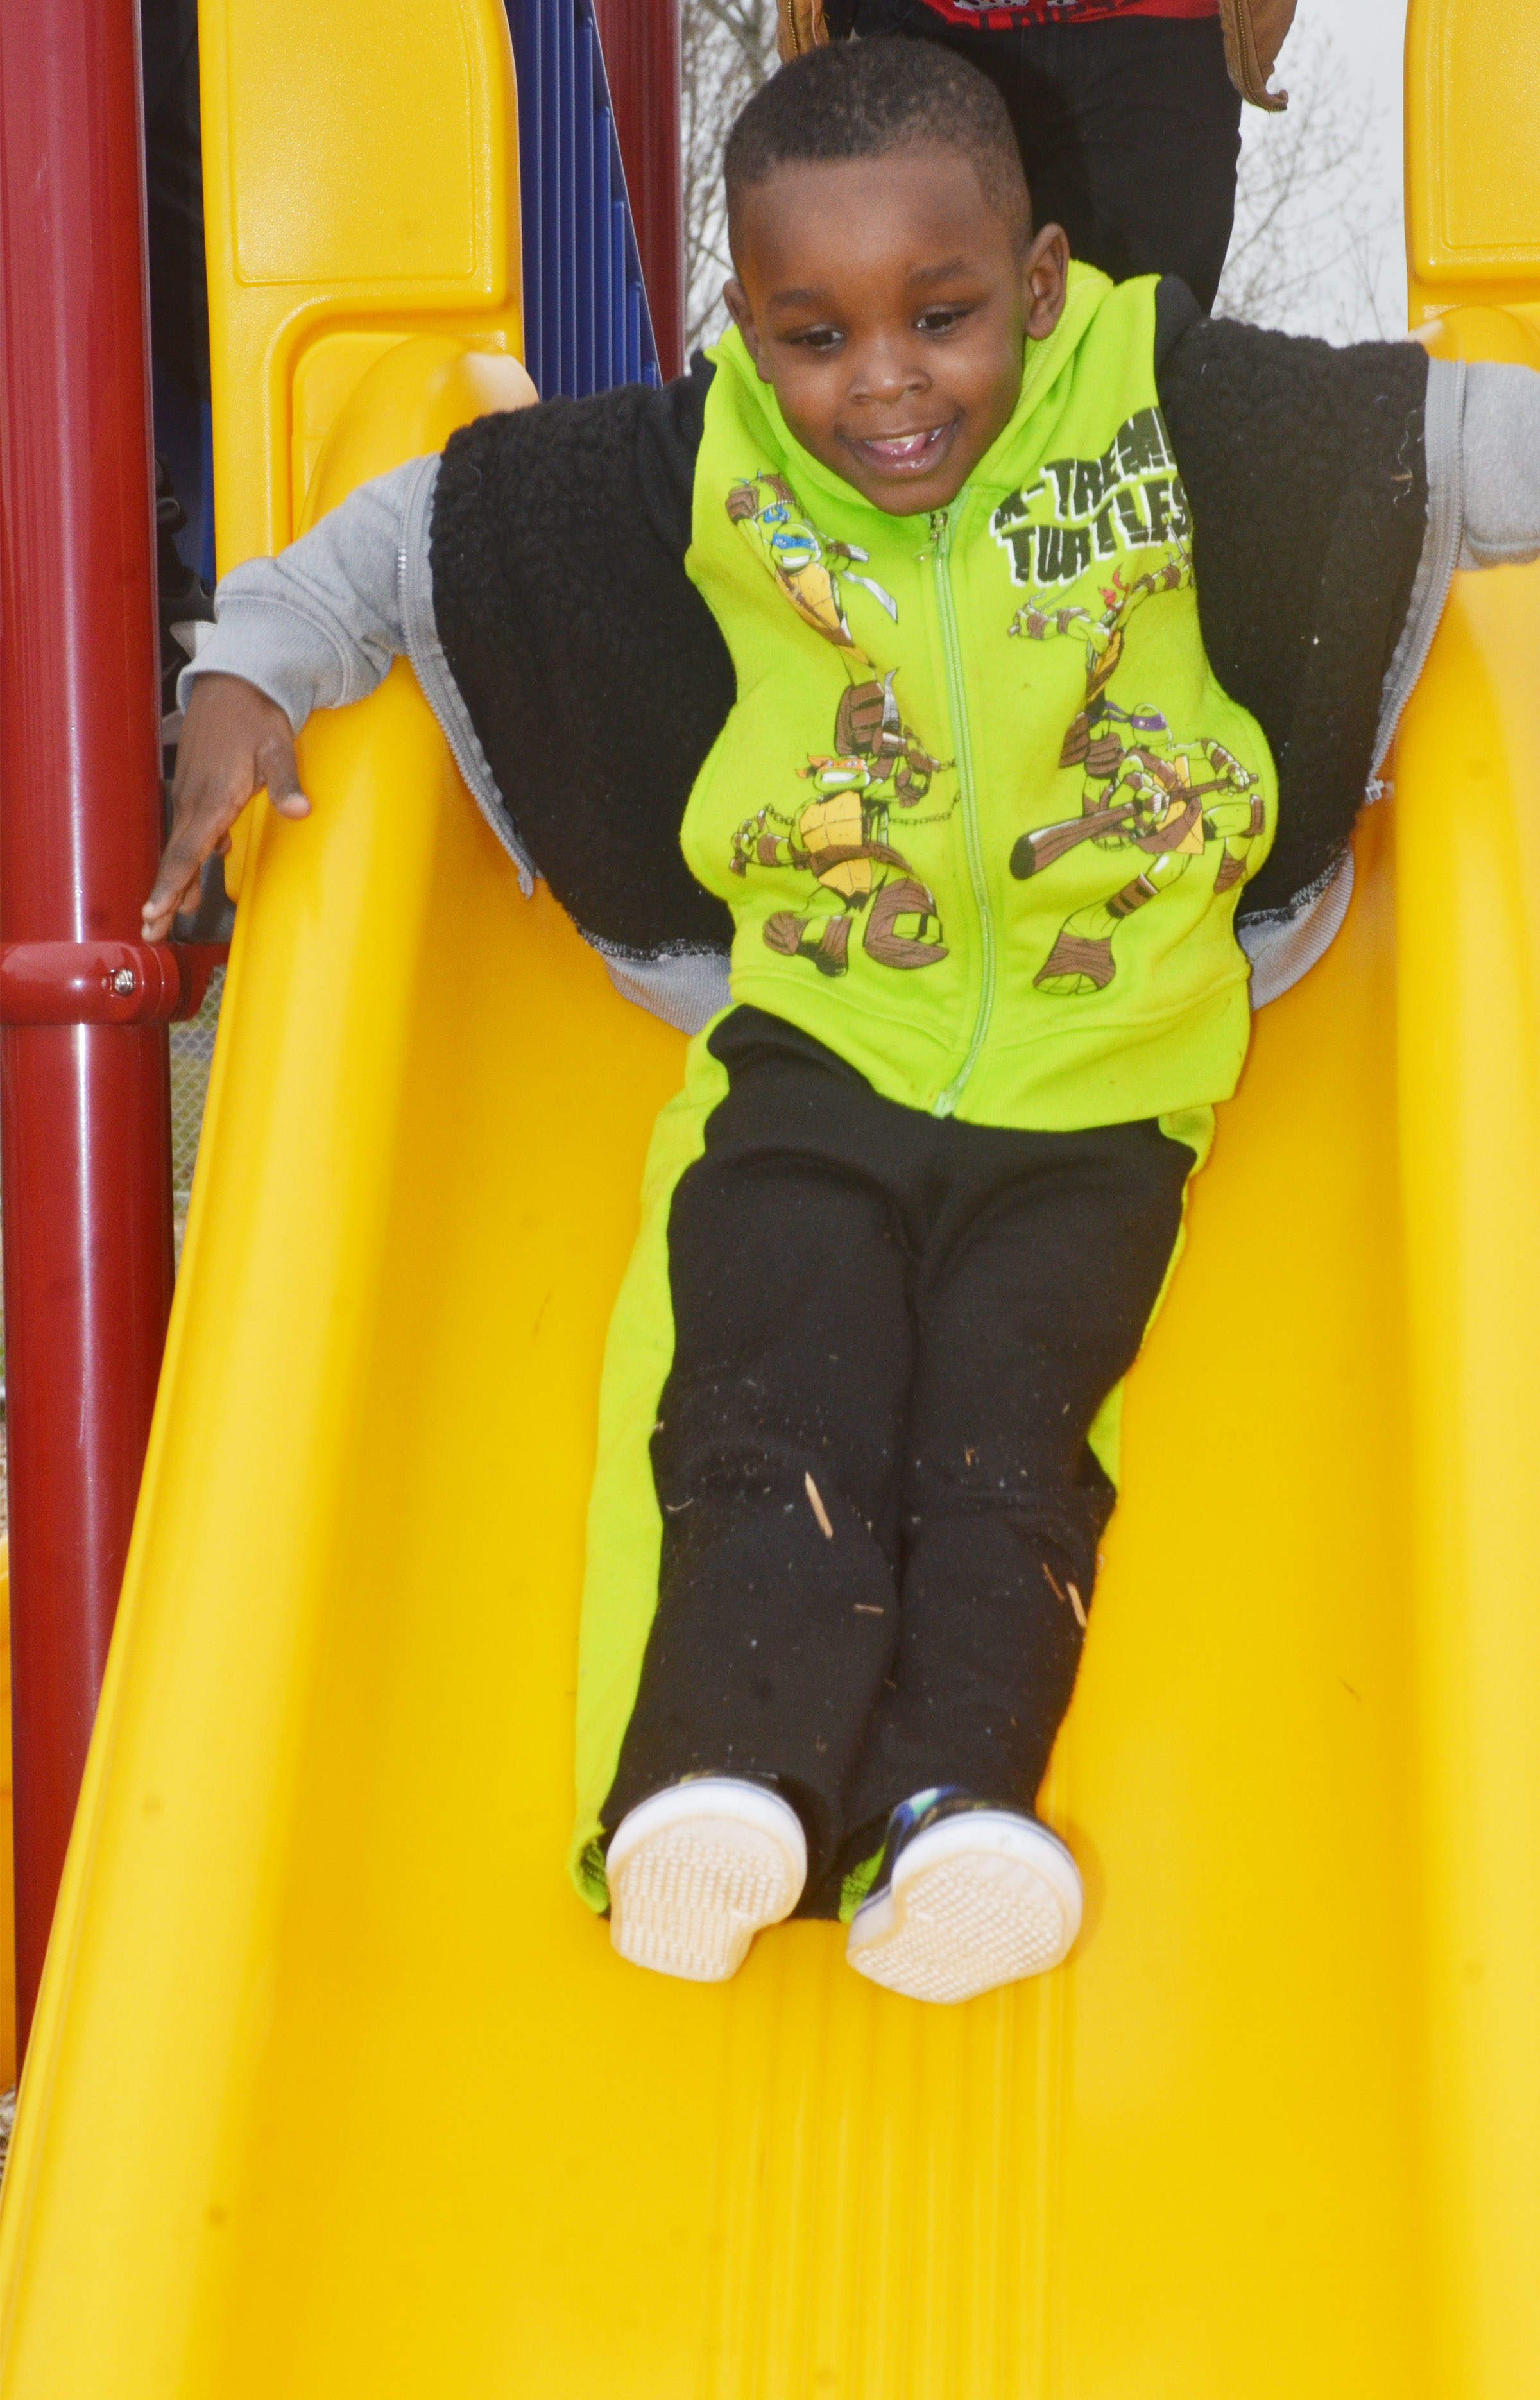 CES preschool student Xavien Smith slides down the slide as he and his classmates enjoy some playground time.